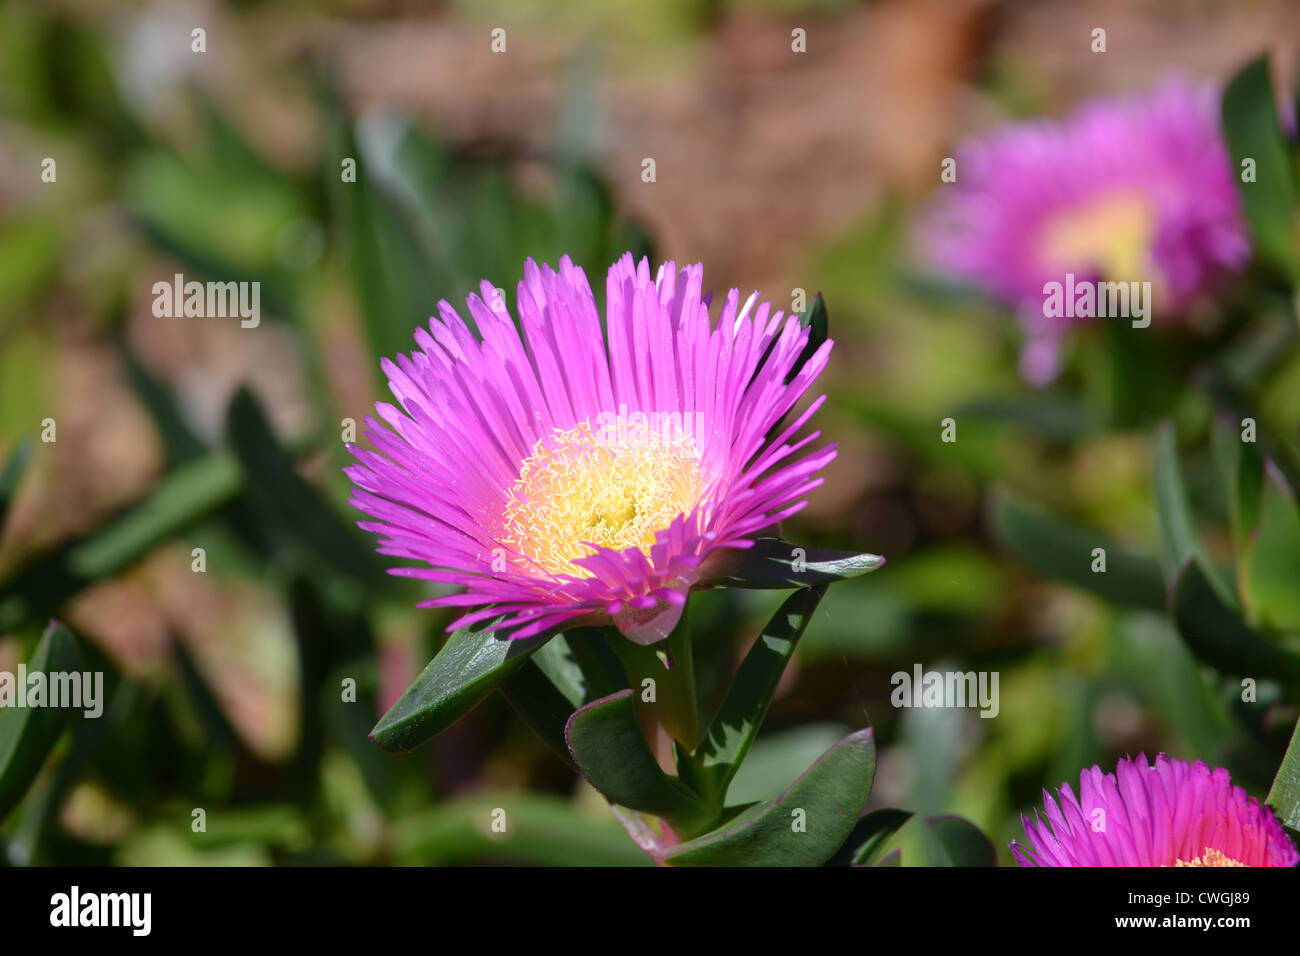 Pink Flower With Yellow Center Stock Photo 50152713 Alamy